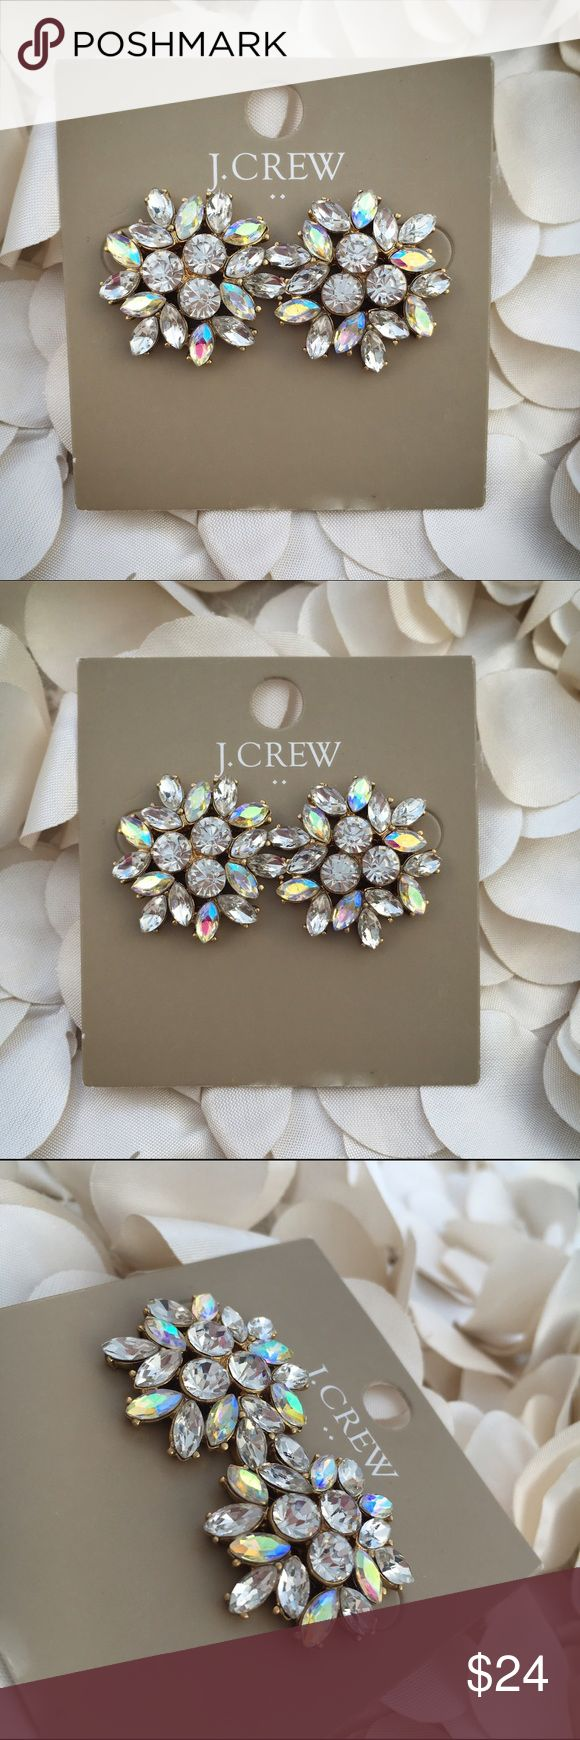 """NWT J Crew Crystal Firework Floral Burst Earrings NWT J Crew Crystal Firework Floral Burst Earrings - Glass stone. - Light gold ox plating. - Dimensions: 1""""L x 1""""W. - white J Crew monogrammed drawstring storage bag and jewelry gift box included with purchase - reasonable offers welcomed - bundle discounts available J. Crew Jewelry Earrings"""